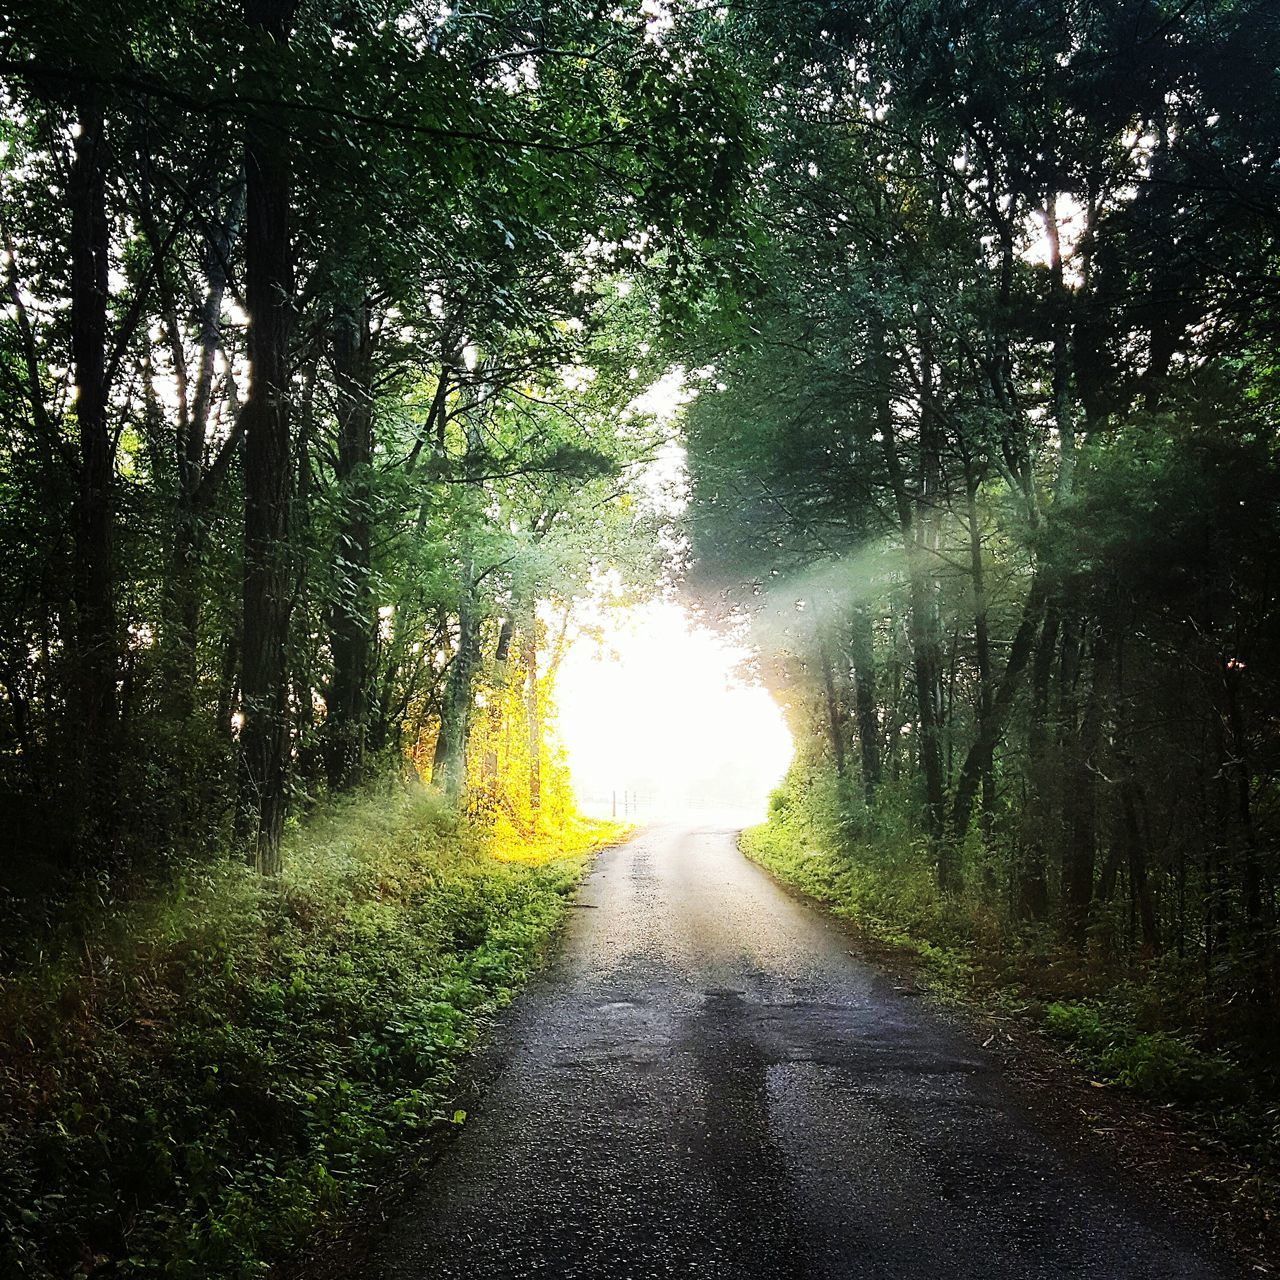 tree, the way forward, nature, forest, road, beauty in nature, tranquil scene, tranquility, no people, outdoors, growth, scenics, day